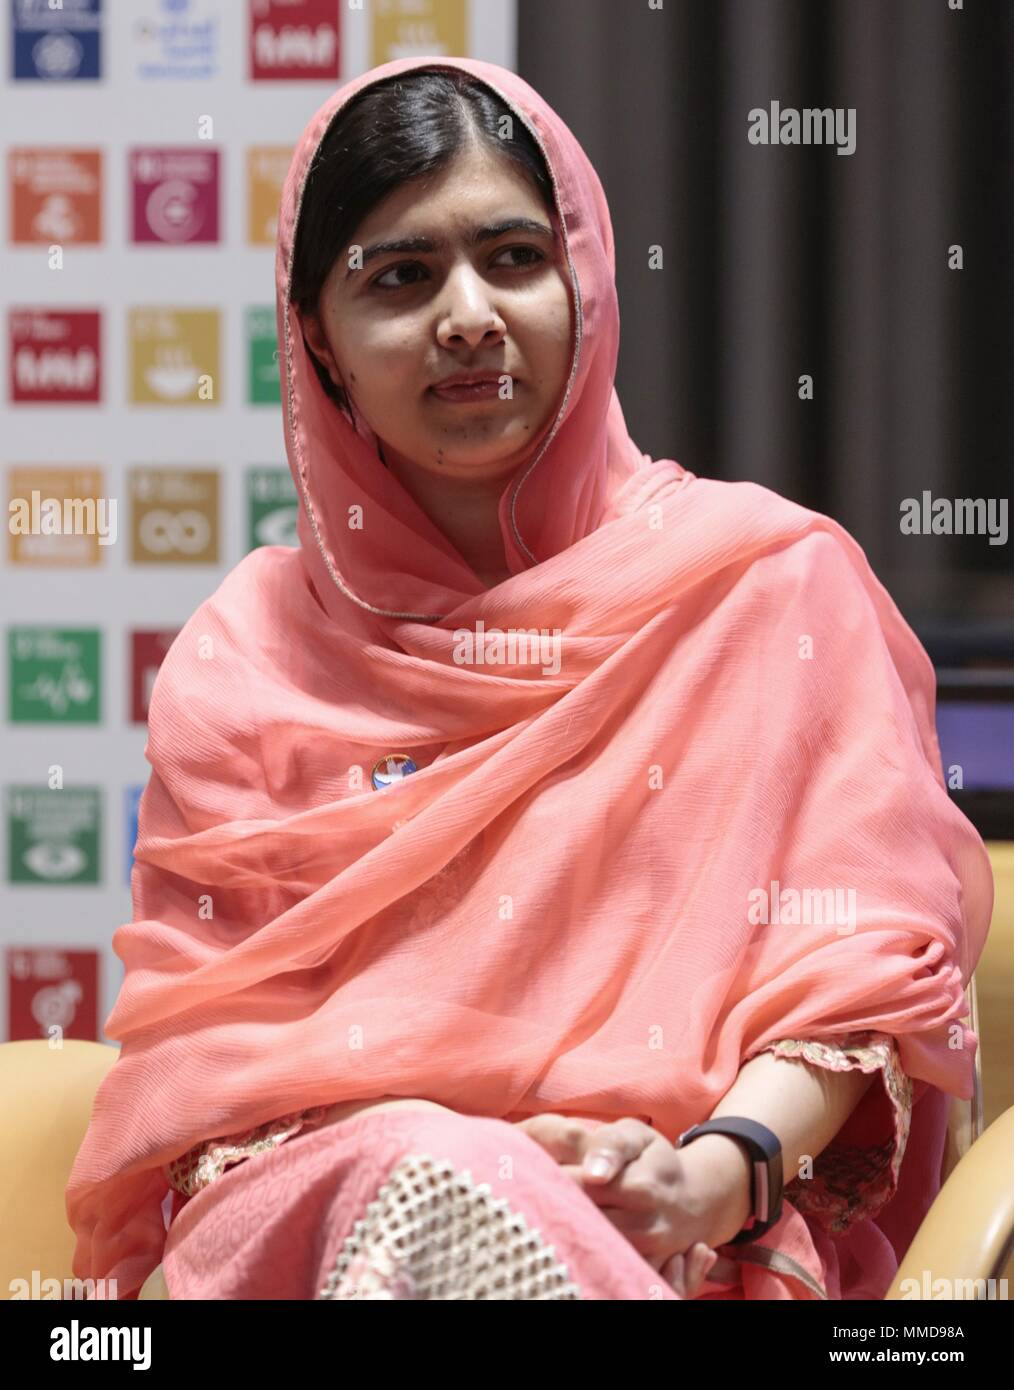 United Nations, New York, USA, 10 April 2017 - Secretary-General Antonio Guterres designated Malala Yousafzai, global advocate for girls education and the youngest-ever Nobel Peace Prize laureate, as a United Nations Messenger of Peace with a special focus on girls education, at a special ceremony today at the UN Headquarters in New York. Photo: Luiz Rampelotto/EuropaNewswire | Verwendung weltweit /MediaPunch ***FOR USA ONLY*** - Stock Image